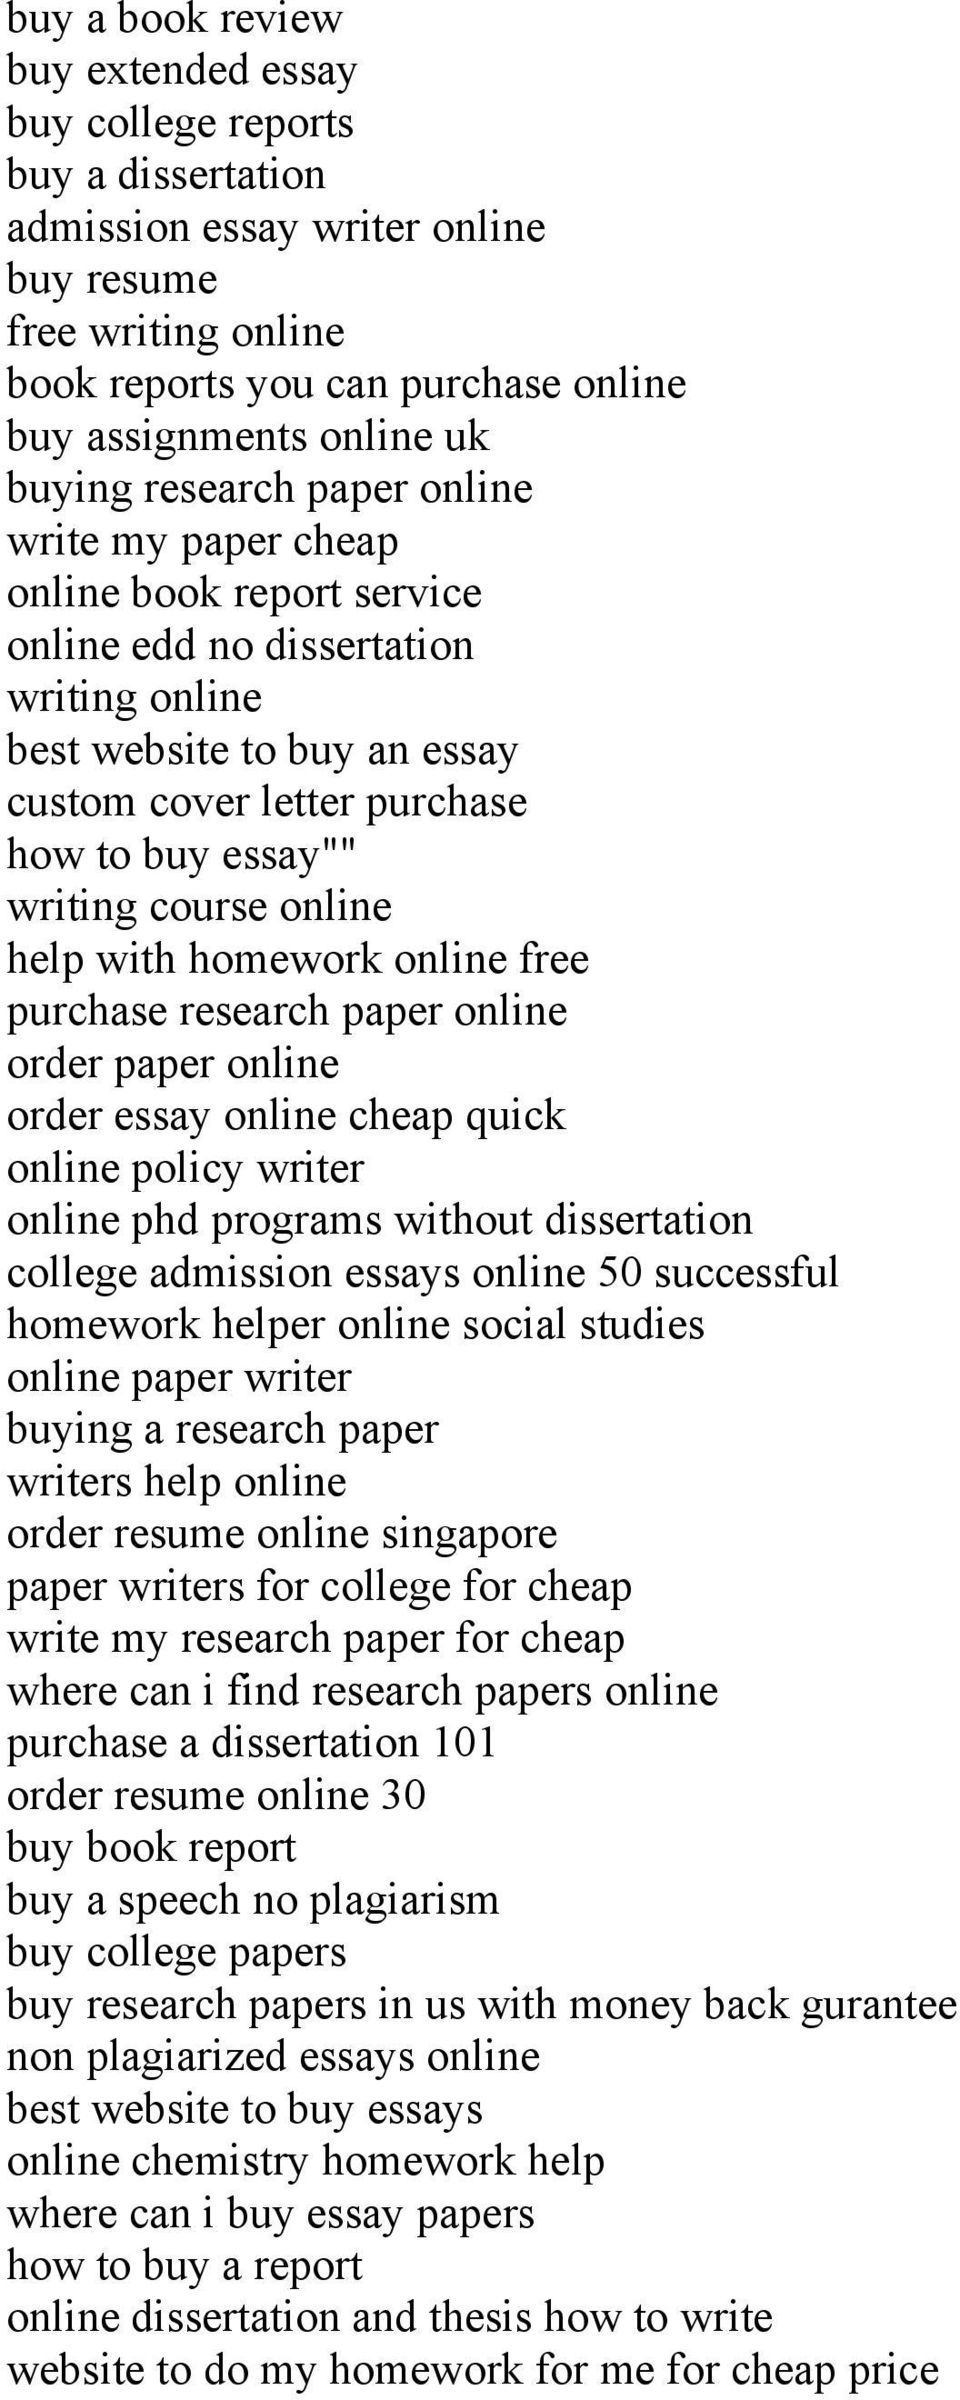 writing course online help with homework online free purchase research paper online order paper online order essay online cheap quick online policy writer online phd programs without dissertation